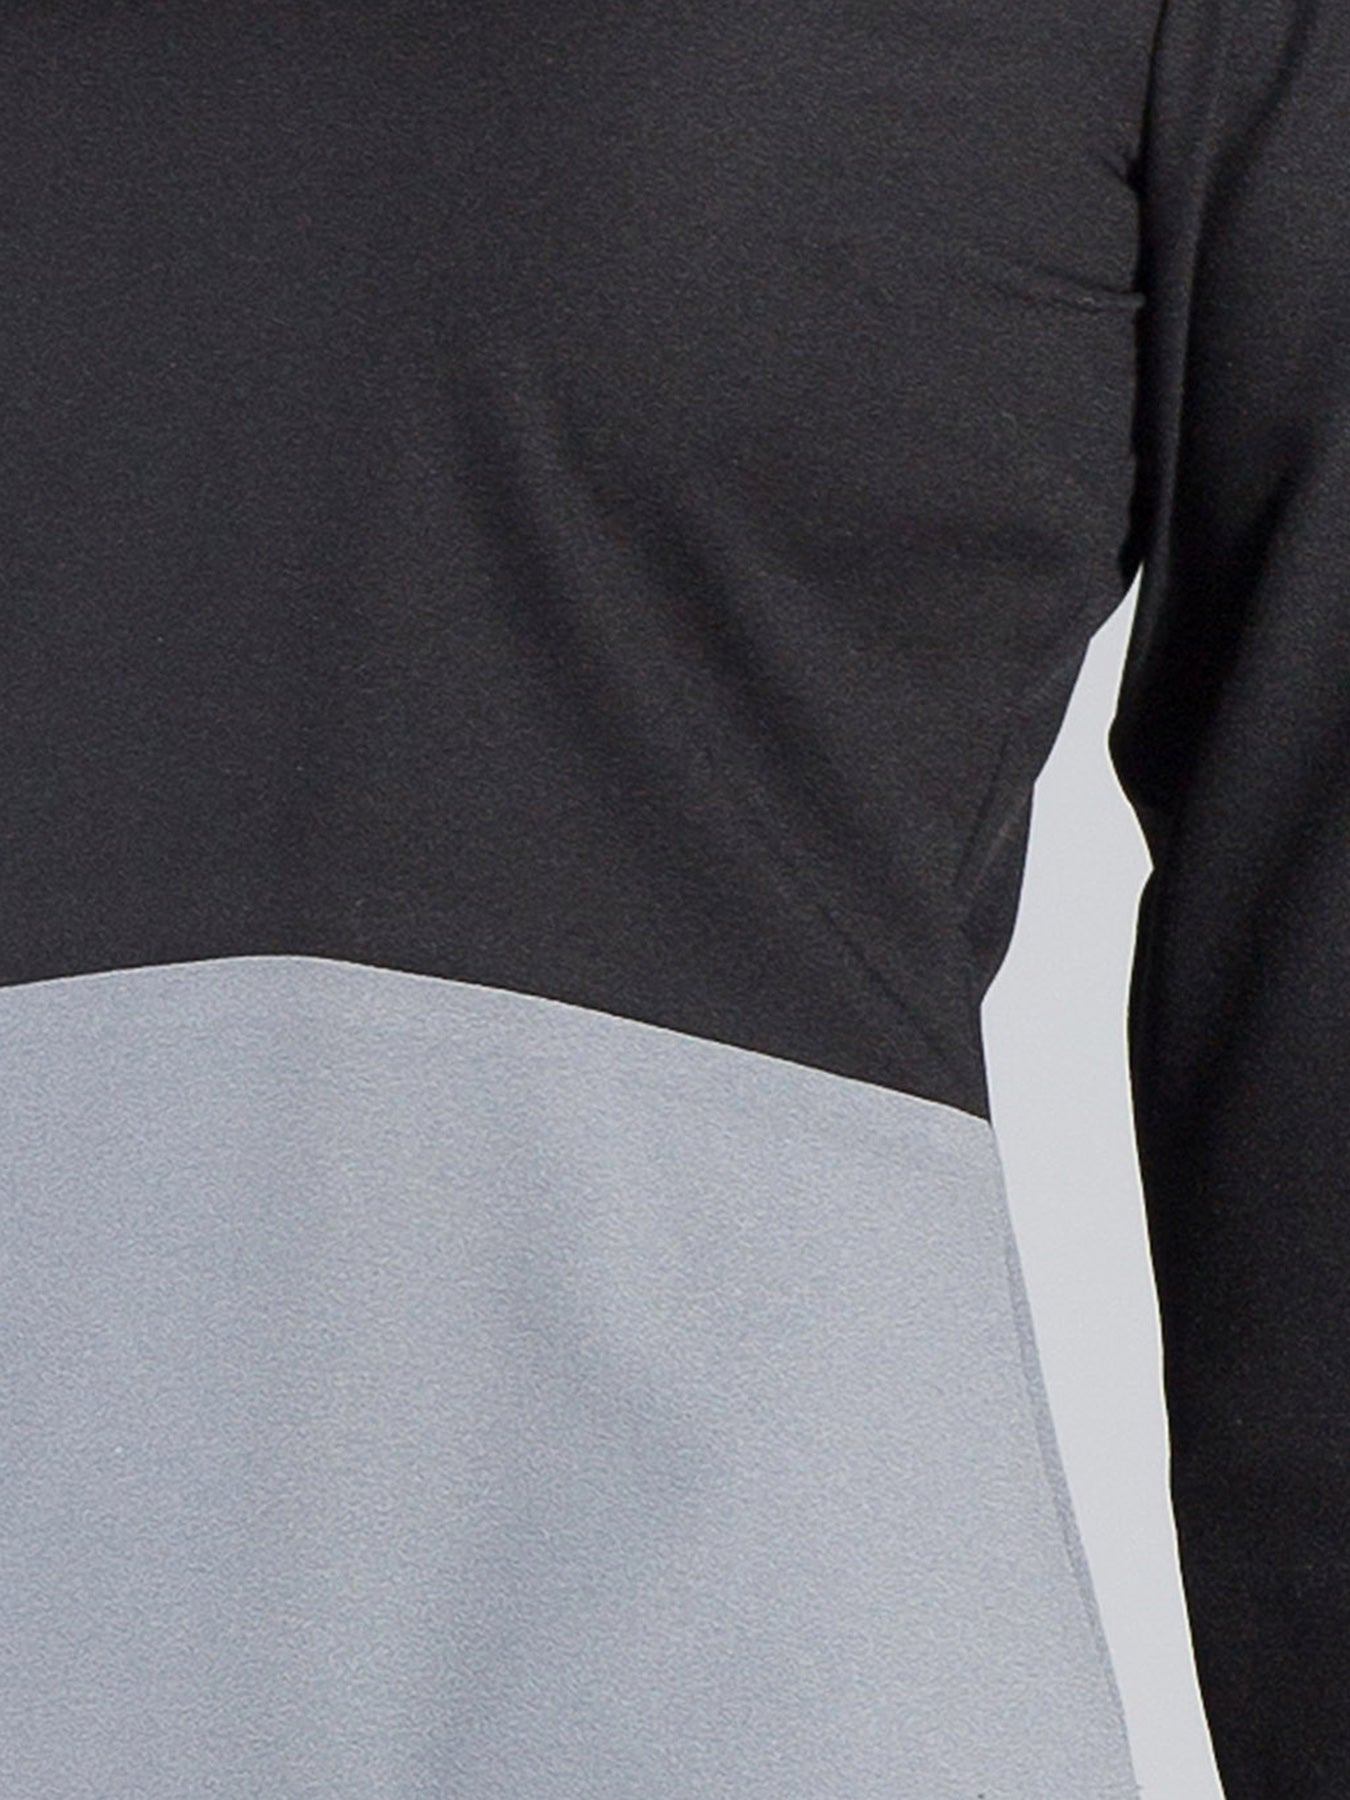 Boat Neck Quarter Sleeve Colour Block Top - Black & Grey